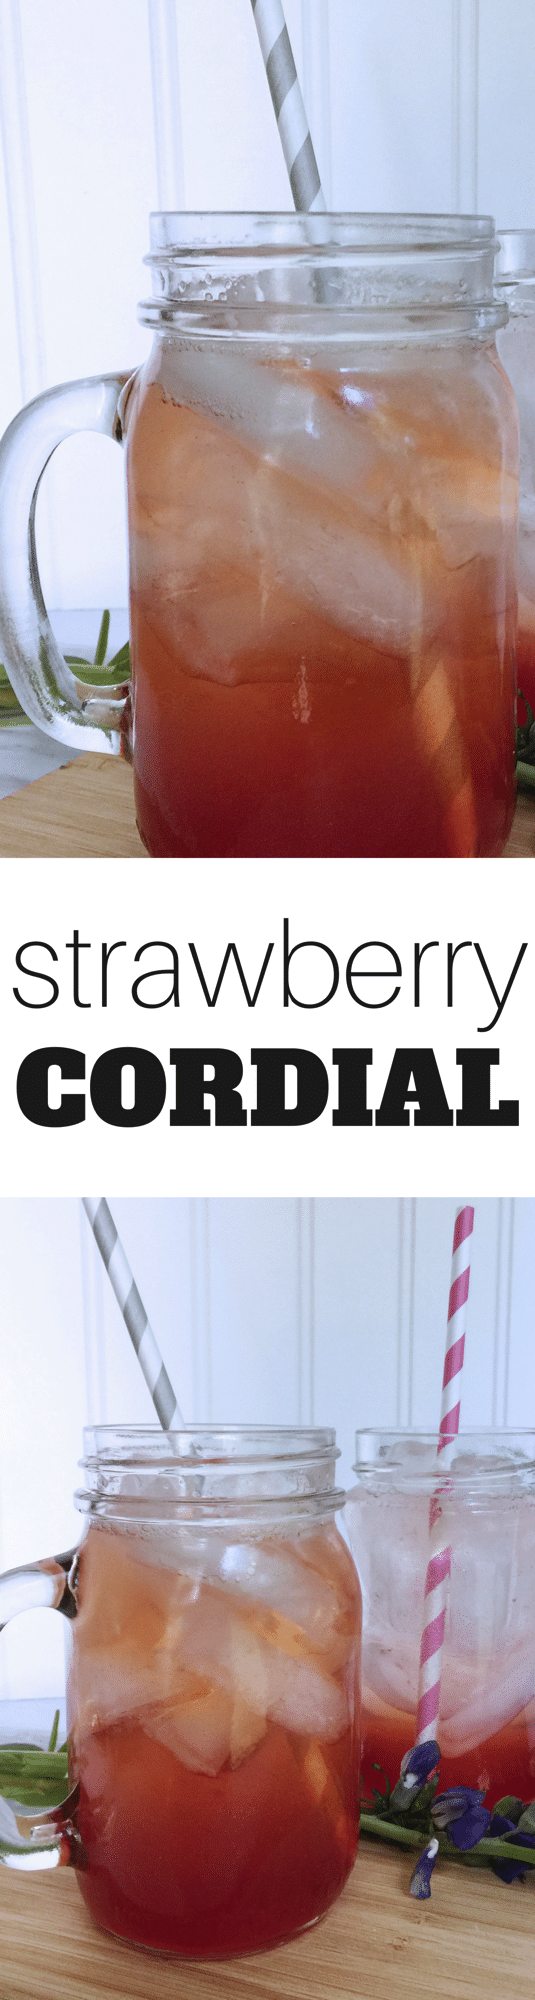 Strawberry Cordial Recipe